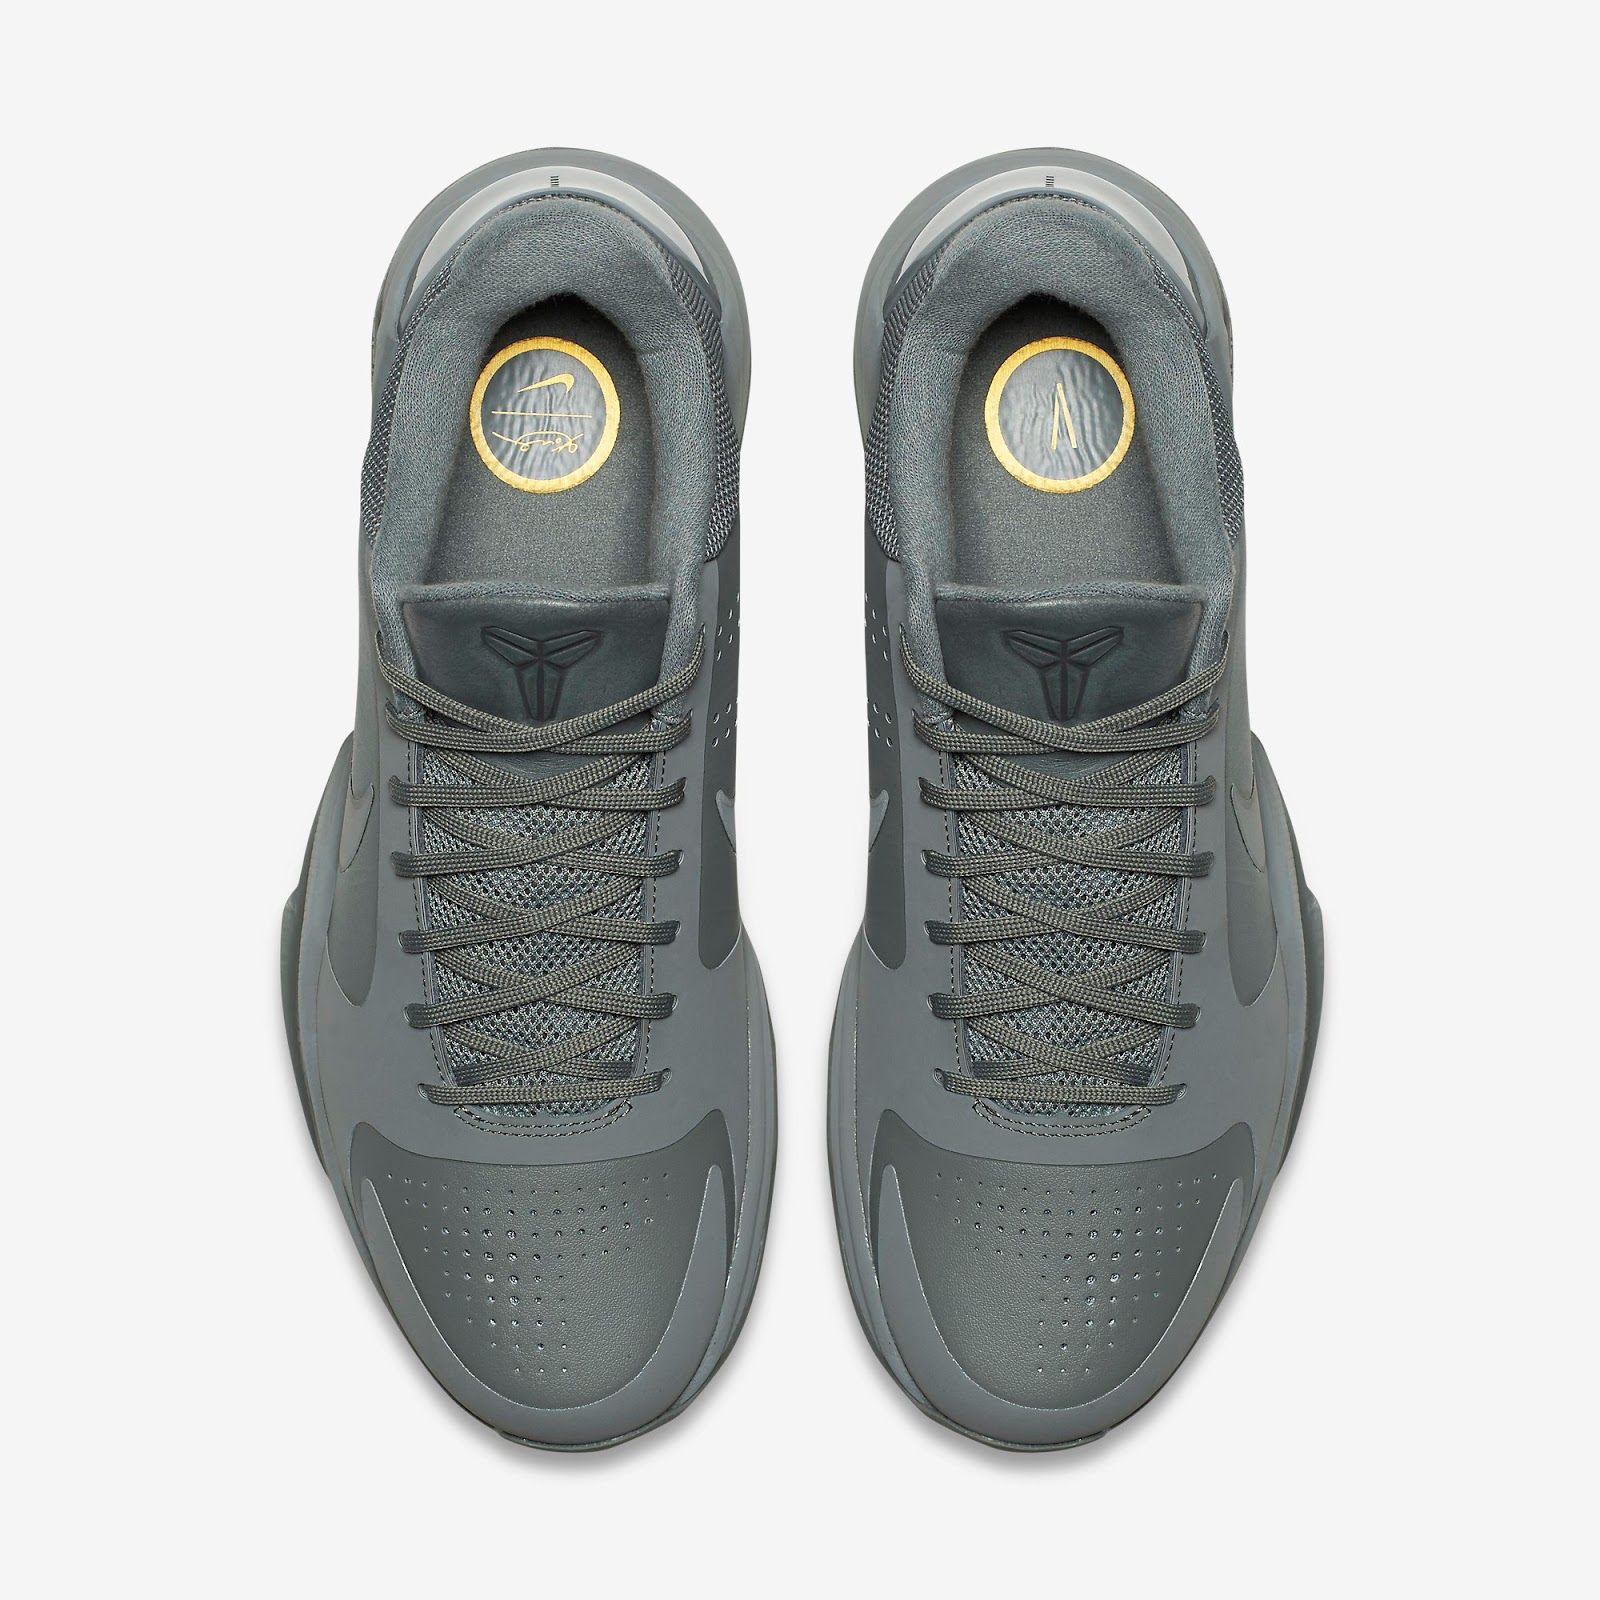 31a56ab1bd0c1 ajordanxi Your  1 Source For Sneaker Release Dates  Nike Zoom Kobe V ...